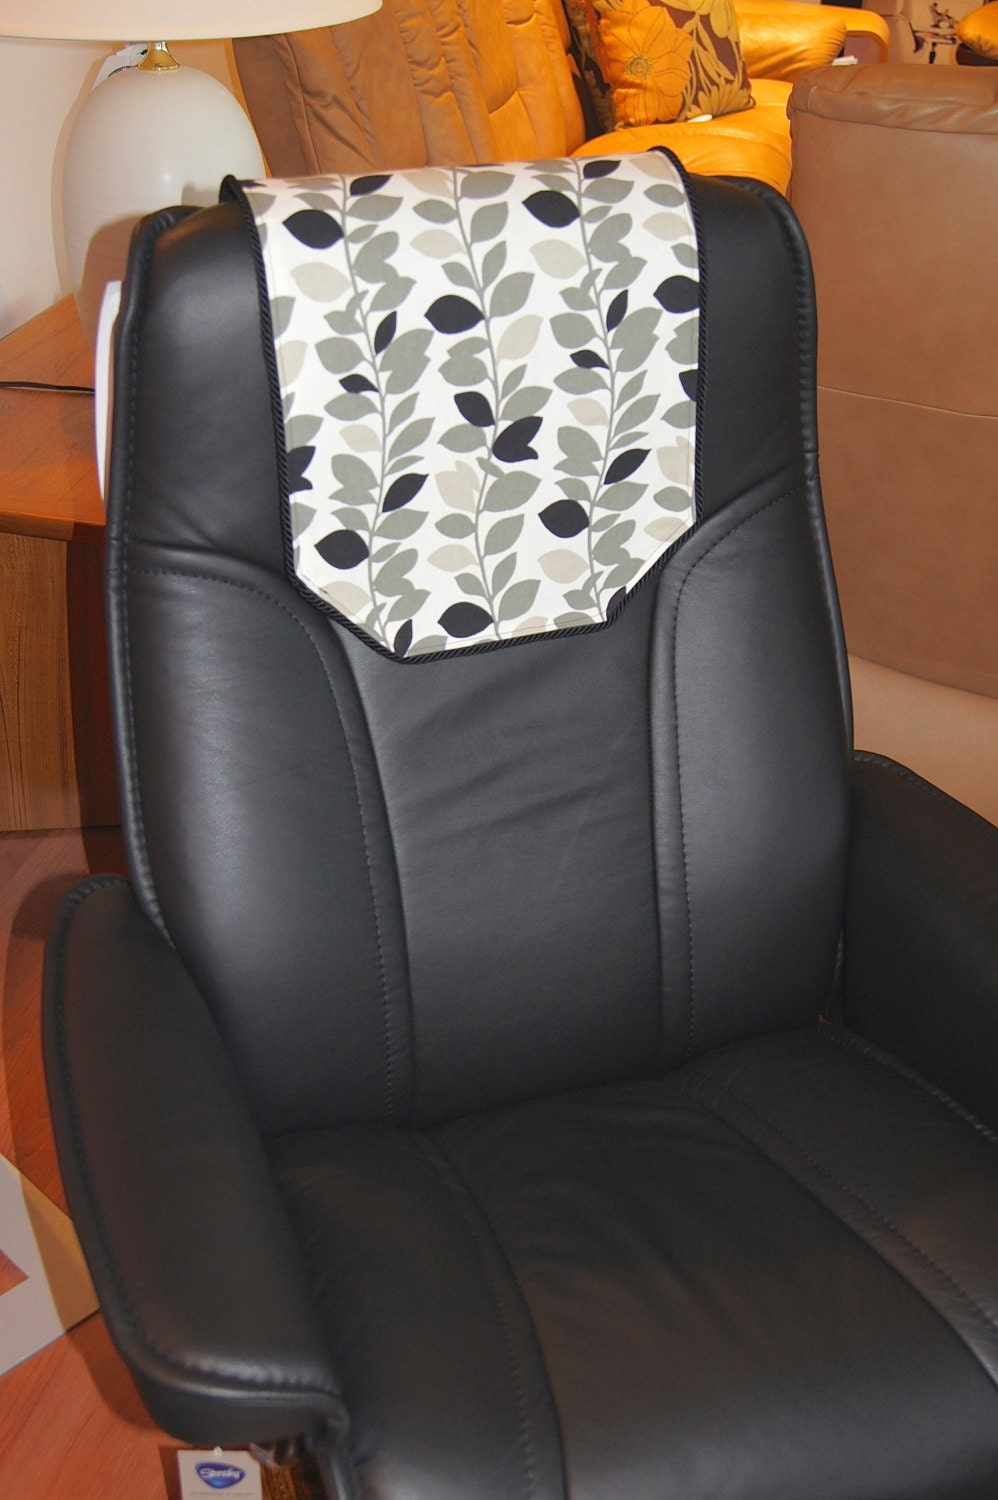 recliner chair headrest cover black gray leaves by